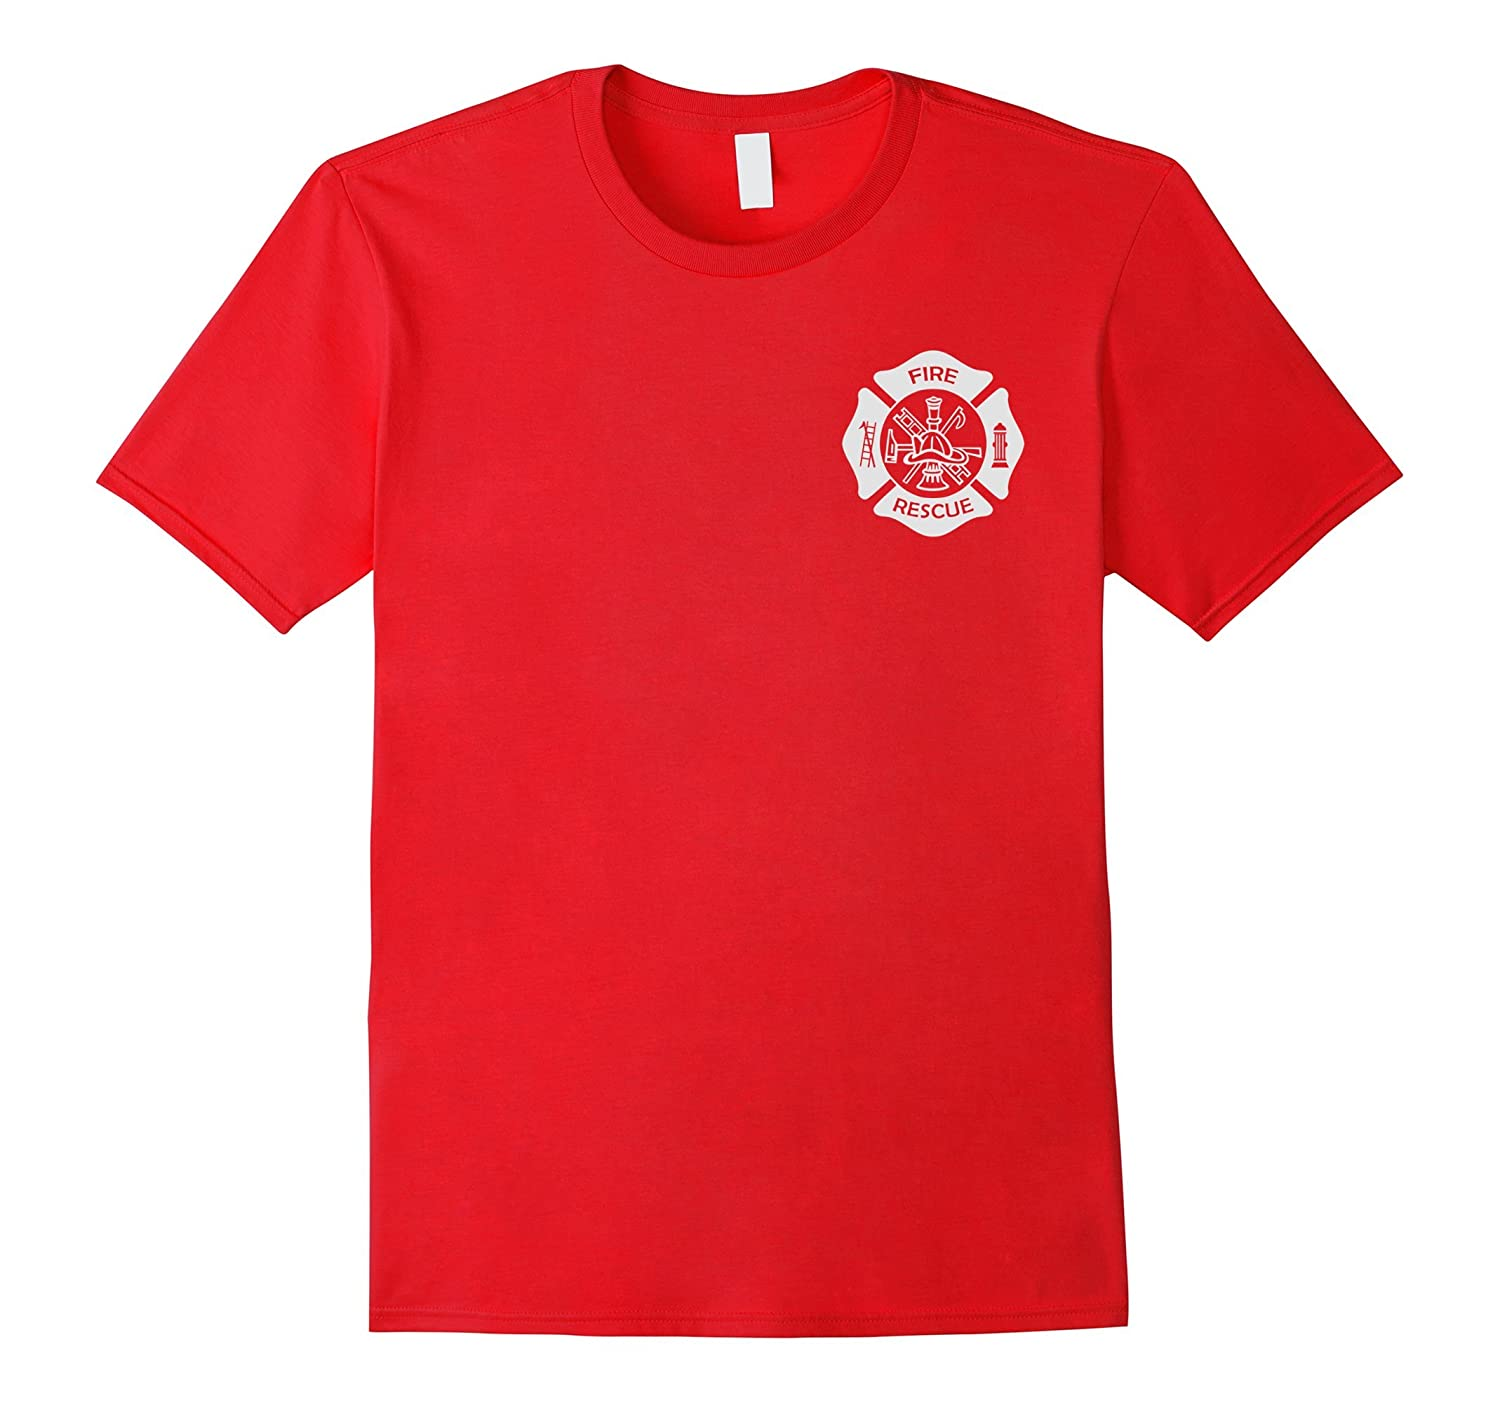 Firefighter Uniform T-Shirt - Official Firemen Gear-FL